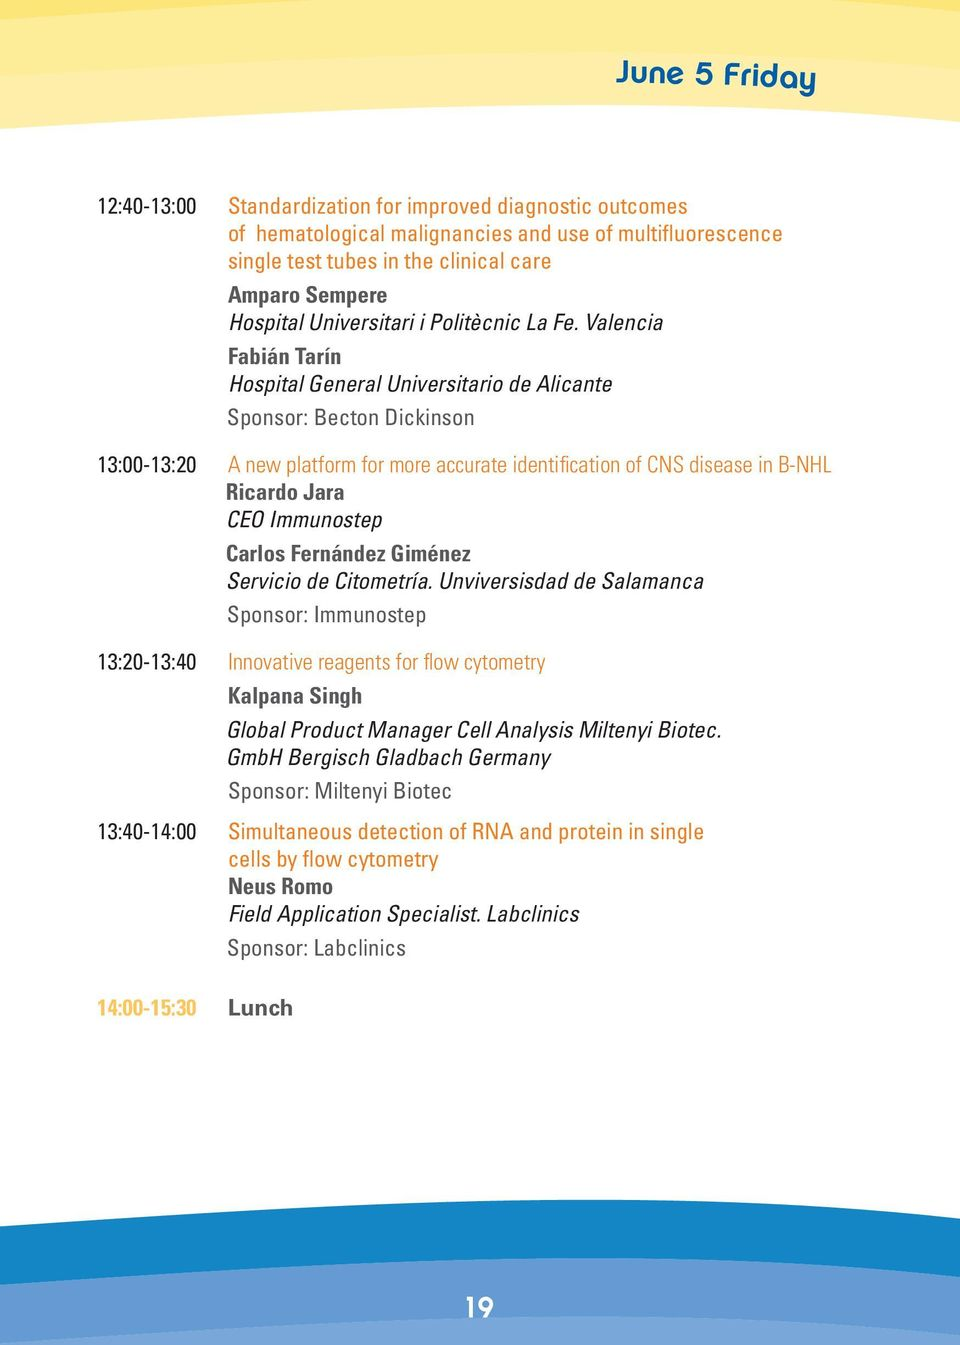 Valencia Fabián Tarín Hospital General Universitario de Alicante Sponsor: Becton Dickinson 13:00-13:20 A new platform for more accurate identification of CNS disease in B-NHL Ricardo Jara CEO